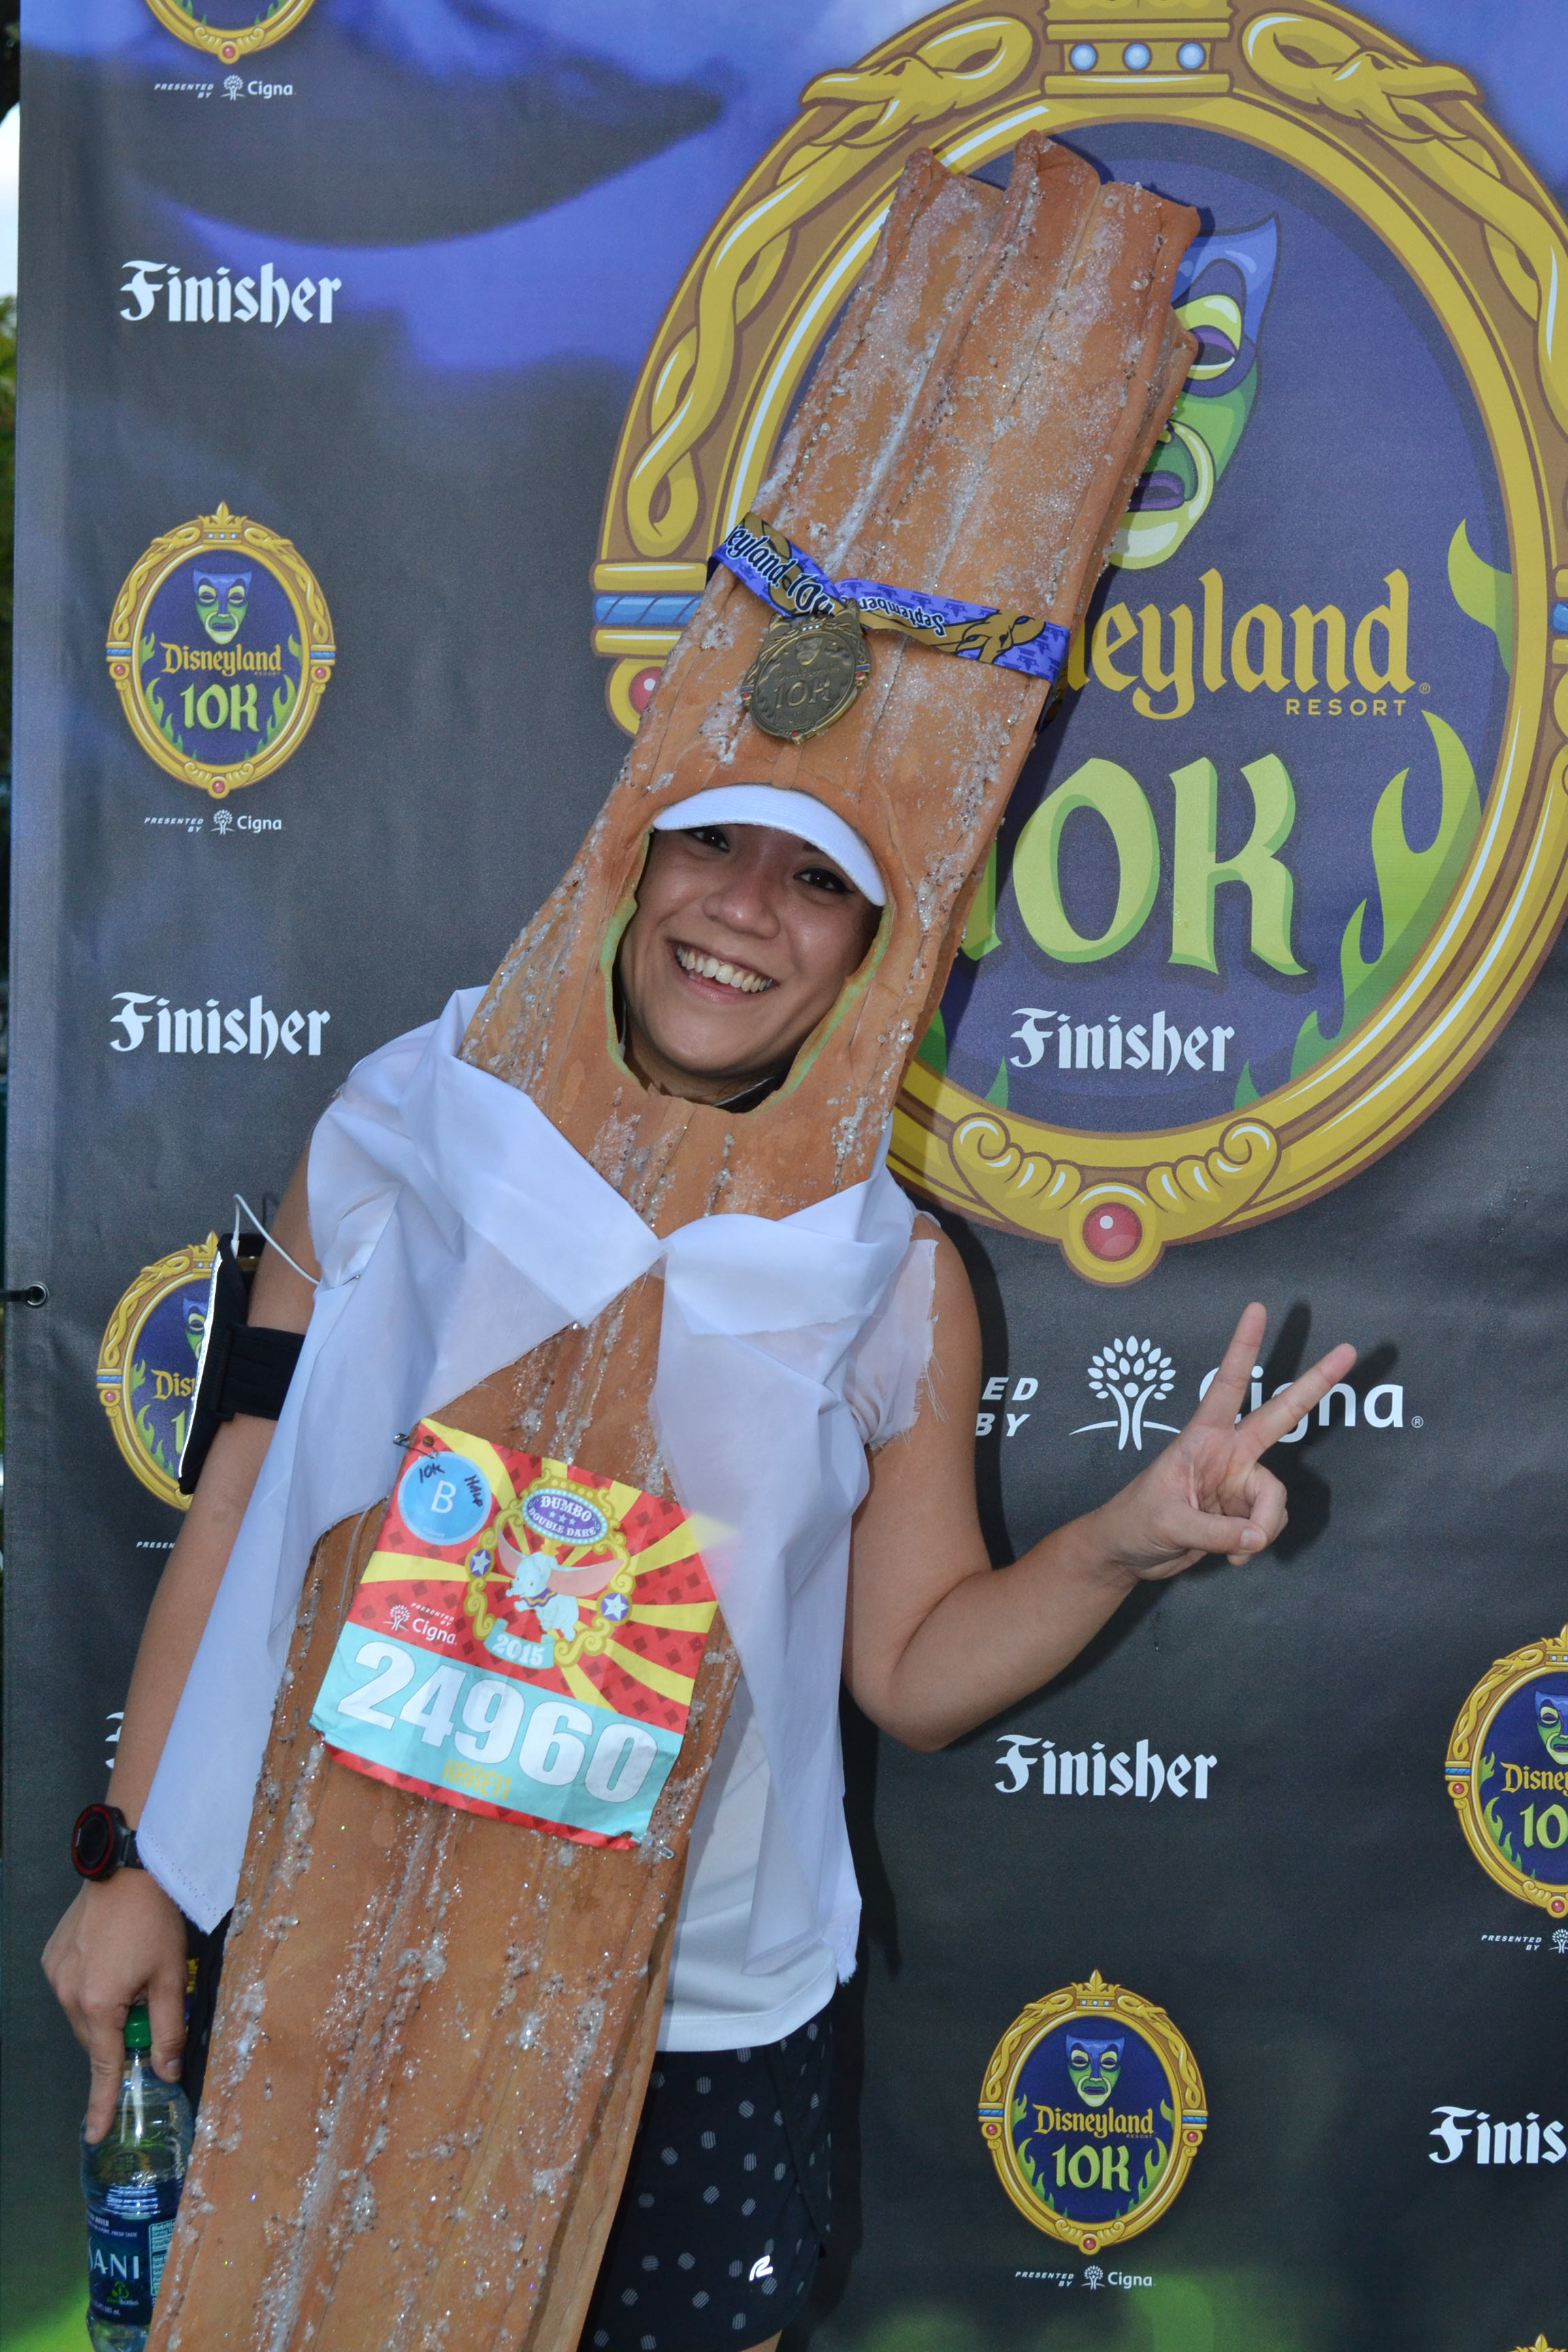 Karen Chu turned quite a few heads during the 2015 Disneyland 10K as she ran the entire course dressed as a larger-than-life churro.  sc 1 st  MousePlanet & Mouseplanet - Racing in Costume by Lani Teshima